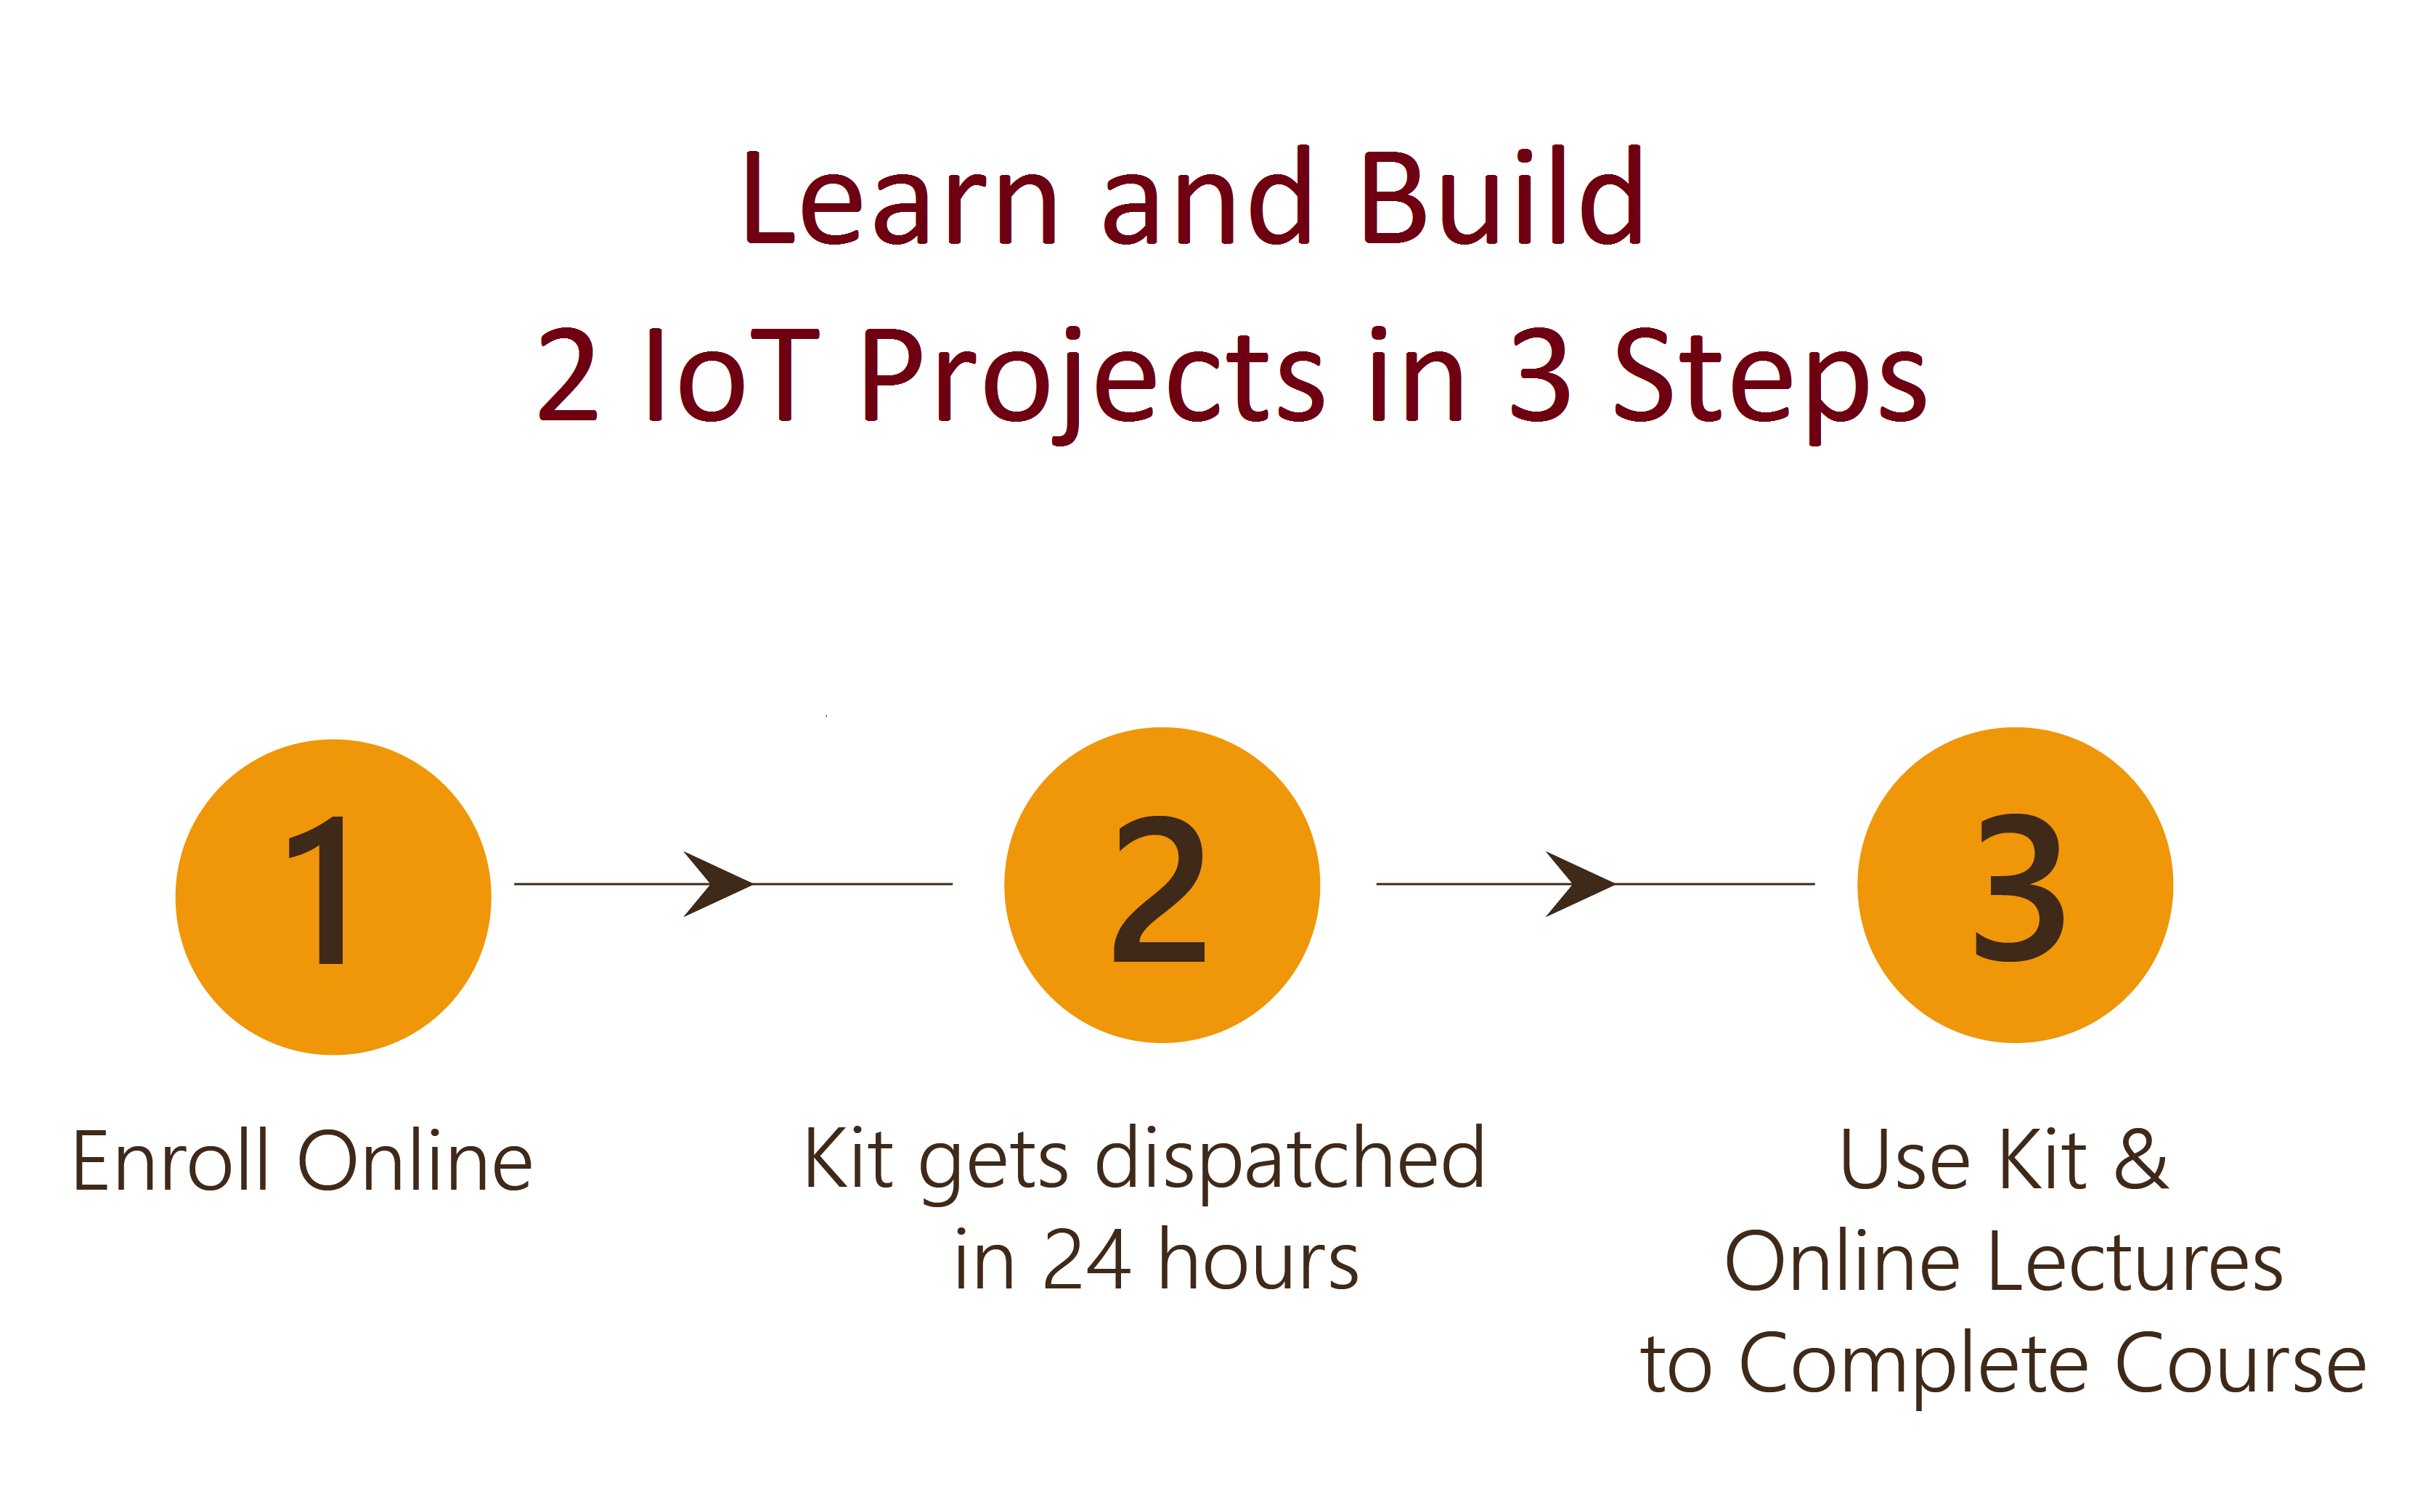 Design and Build 2 IoT Projects in 3 Steps